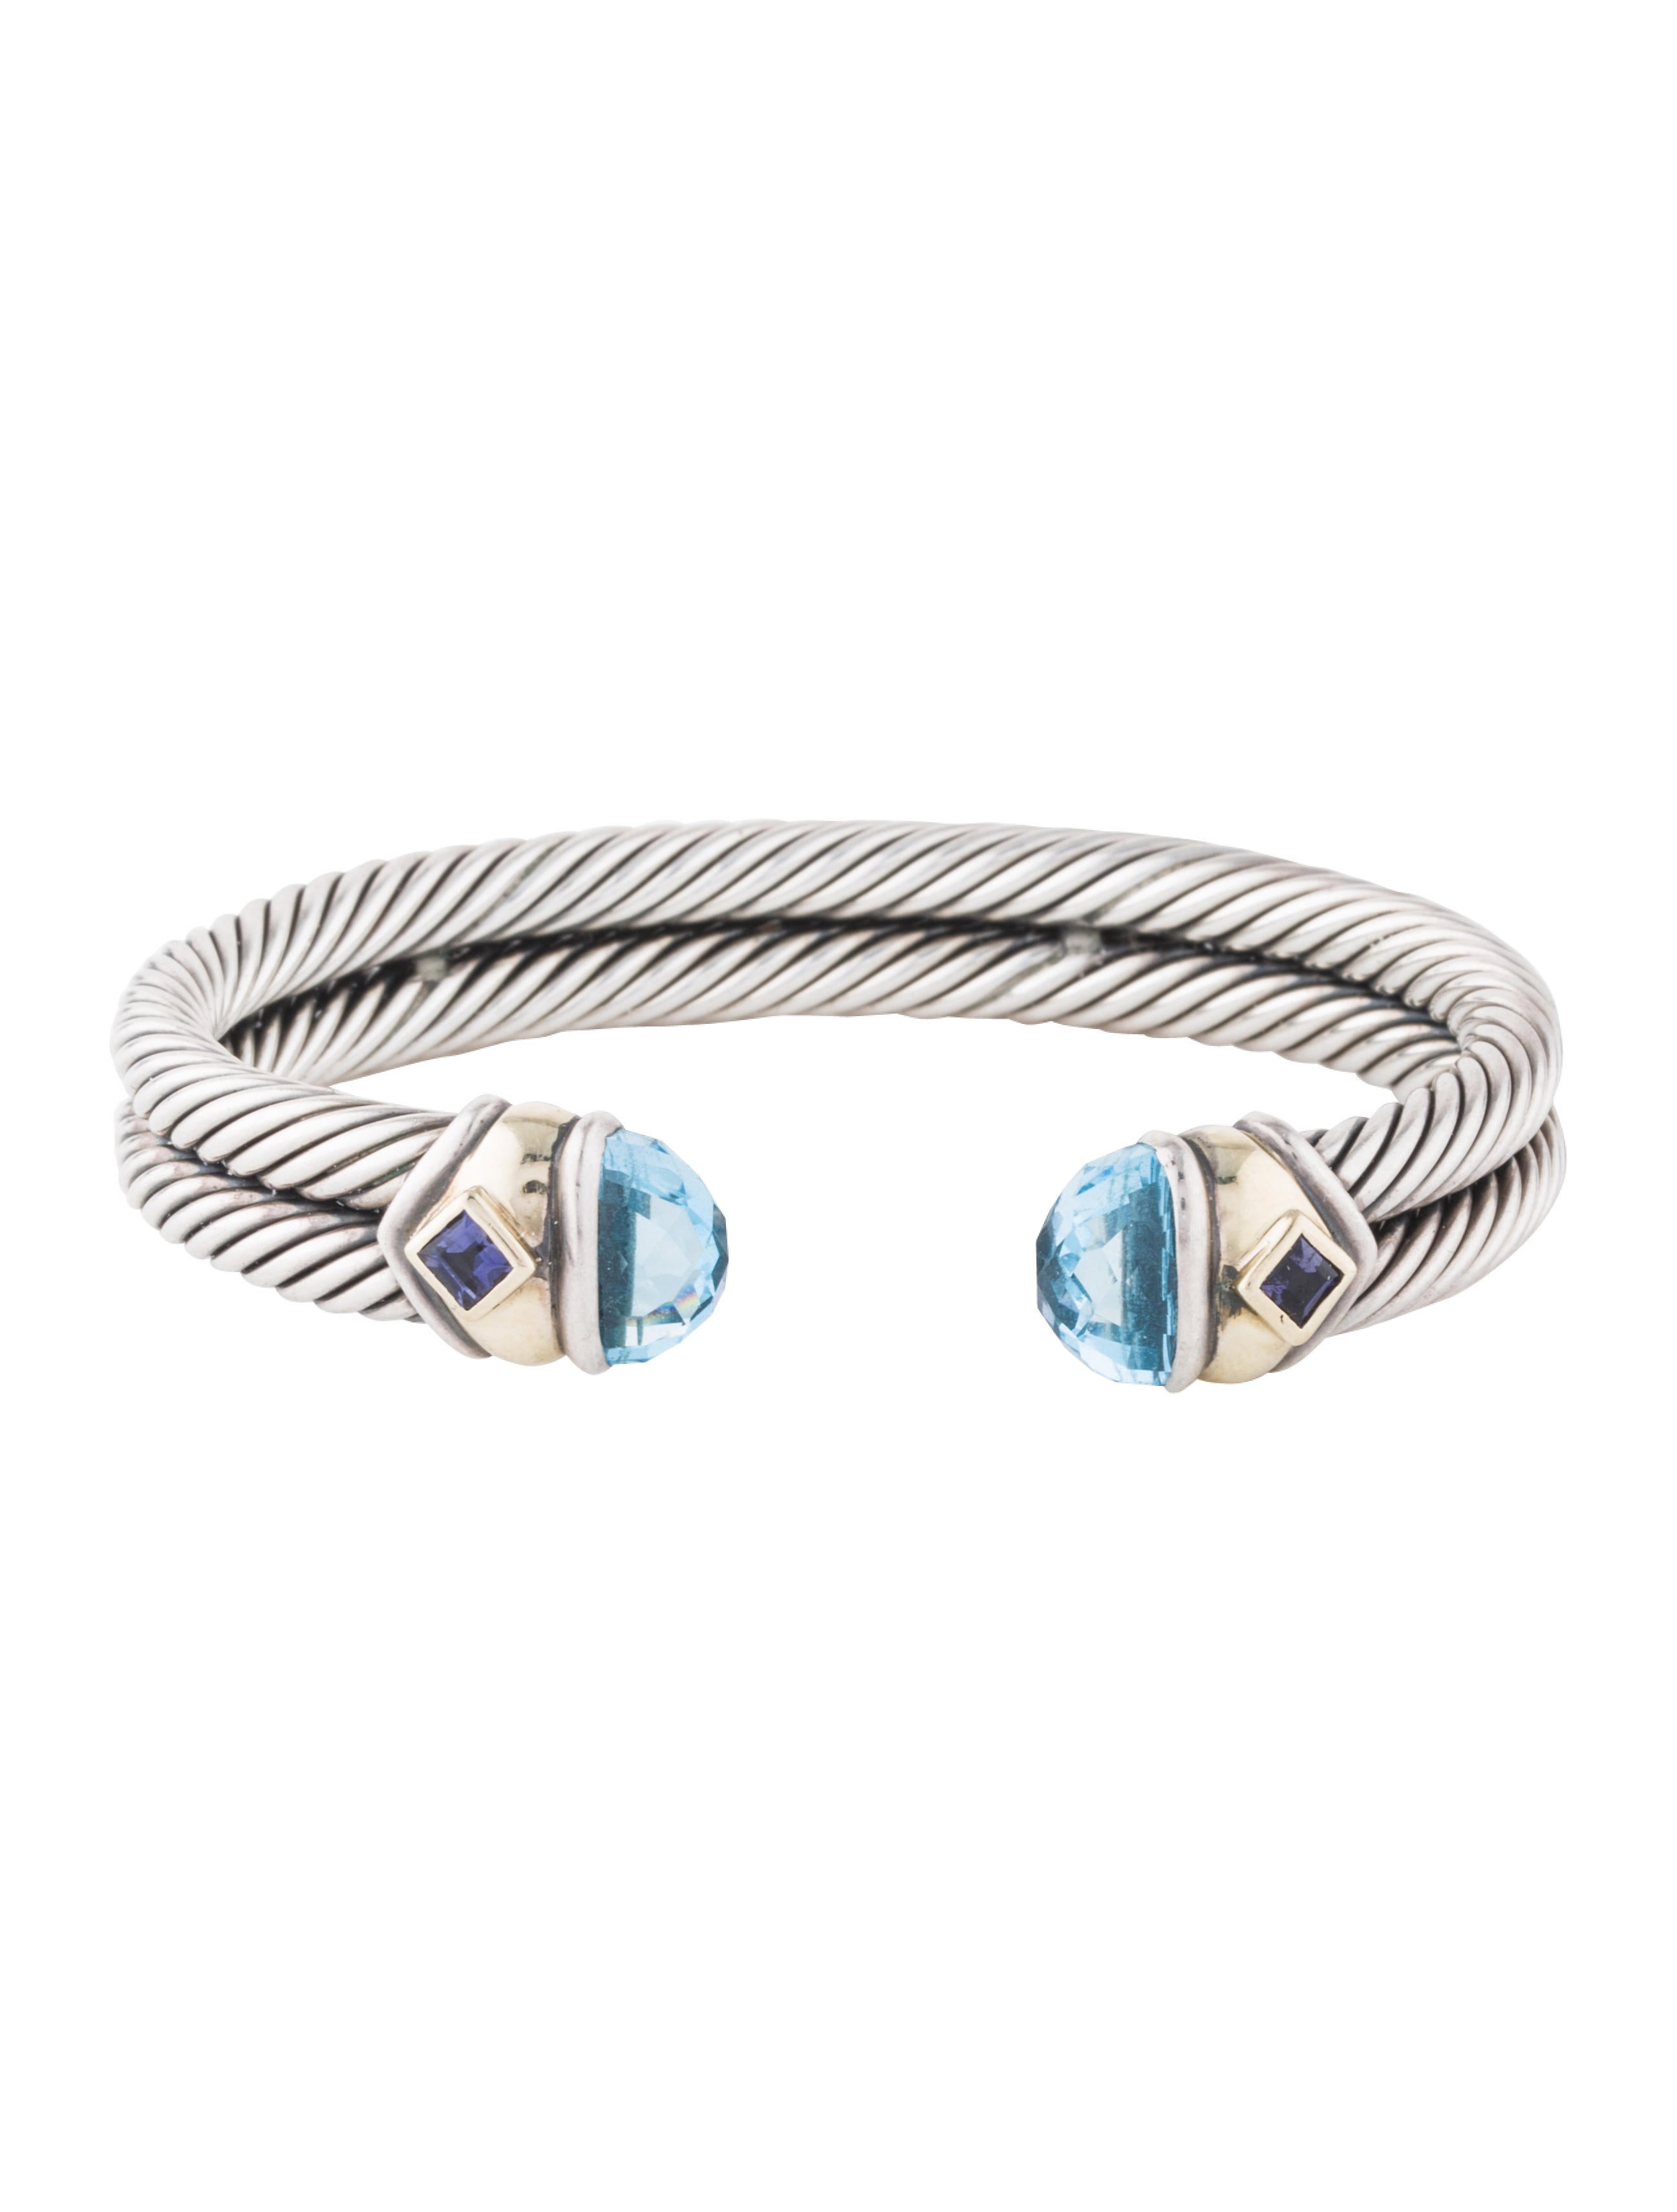 David yurman double cable renaissance bracelet bracelets for David yurman inspired bracelet cable